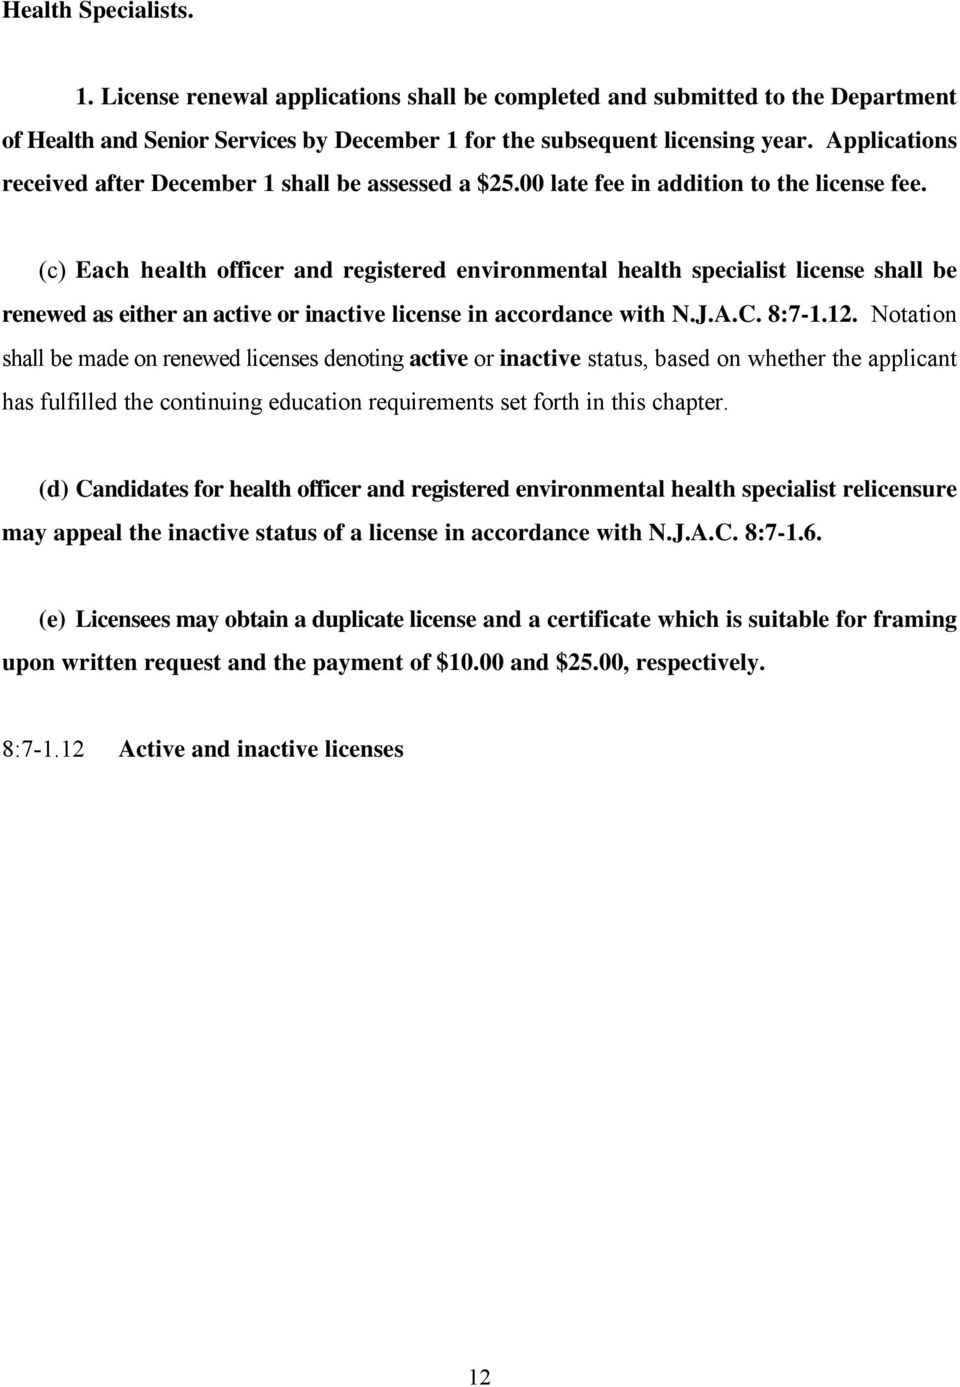 (c) Each health officer and registered environmental health specialist license shall be renewed as either an active or inactive license in accordance with N.J.A.C. 8:7-1.12.